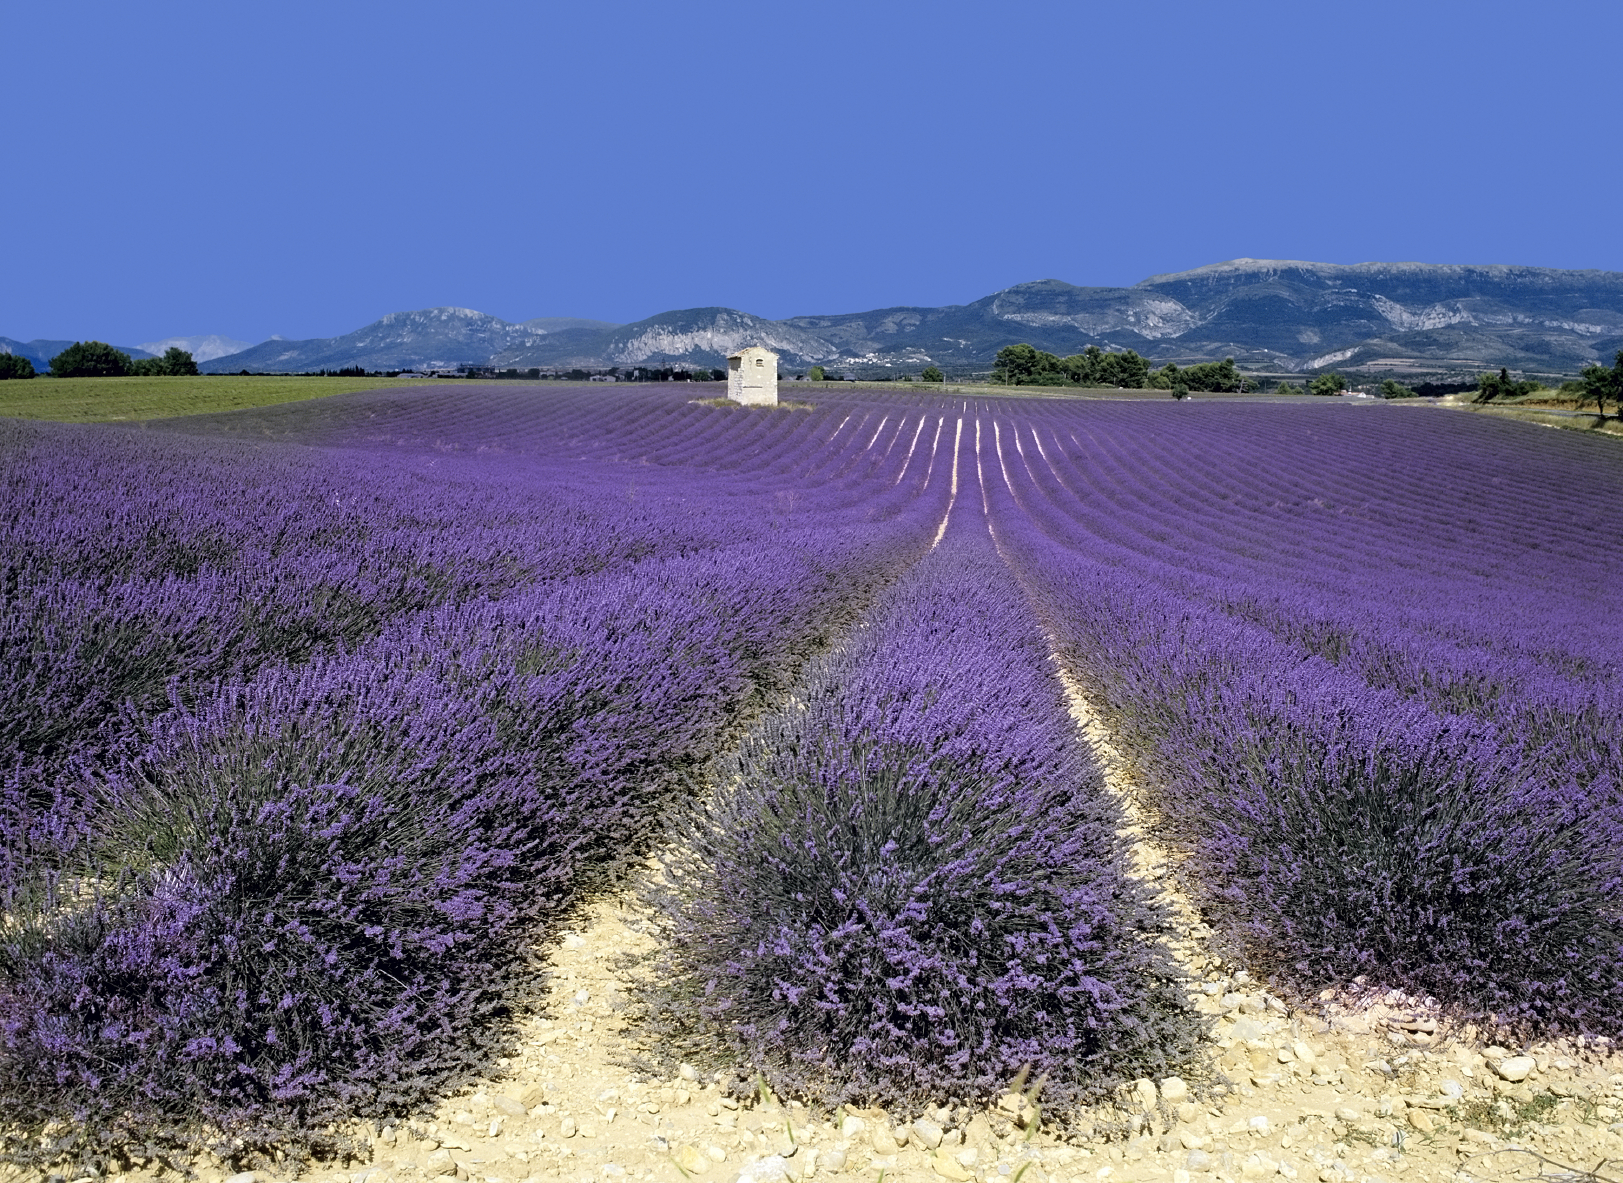 Property insights for Provence revealed by Home Hunts